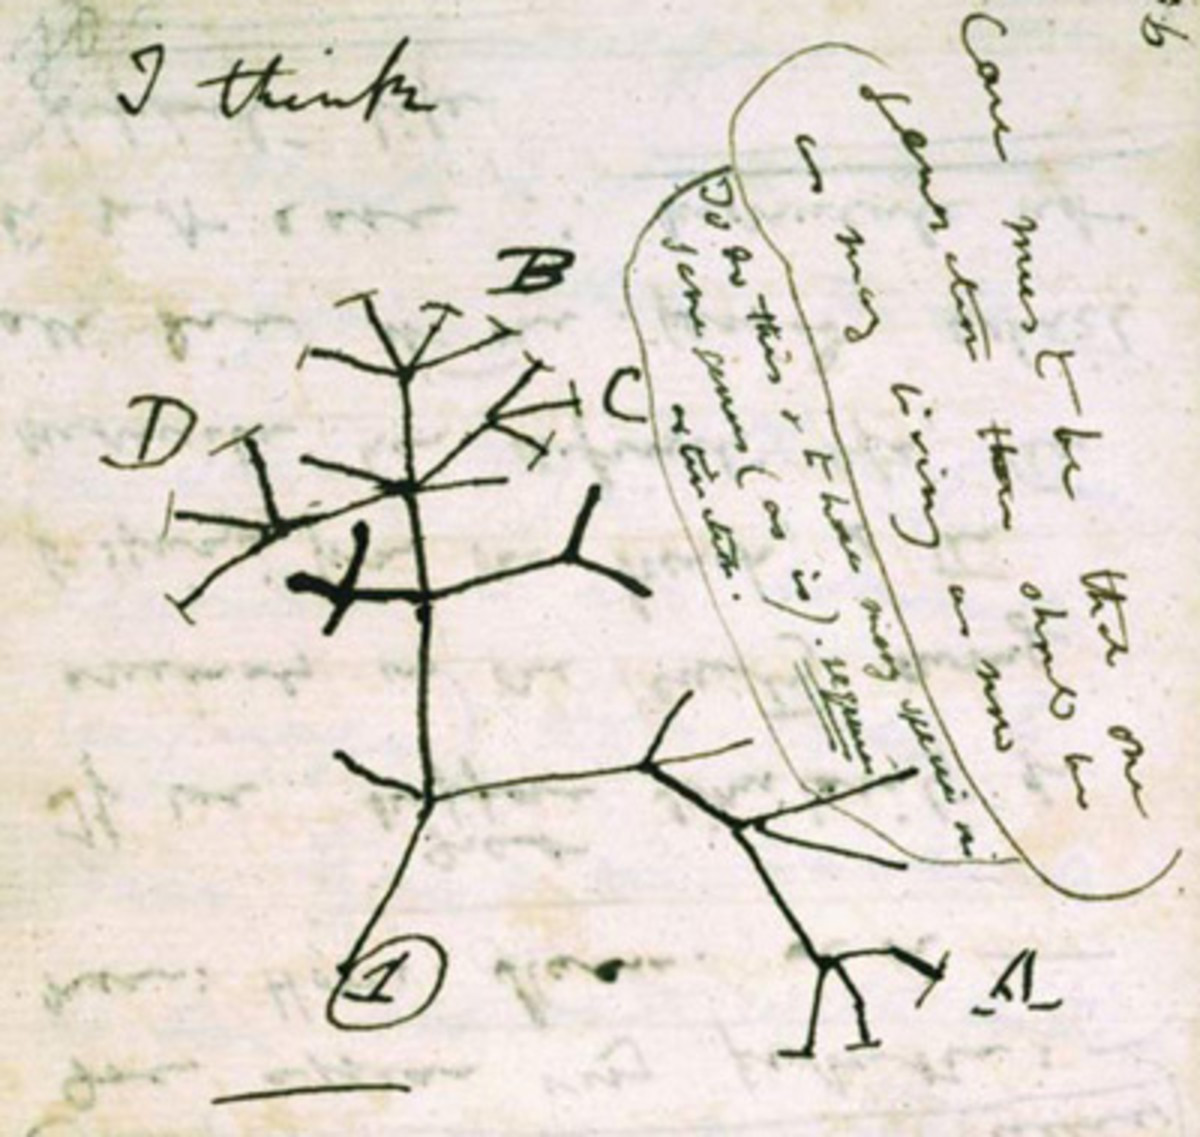 Darwin's Original Sketch of the Tree of Life